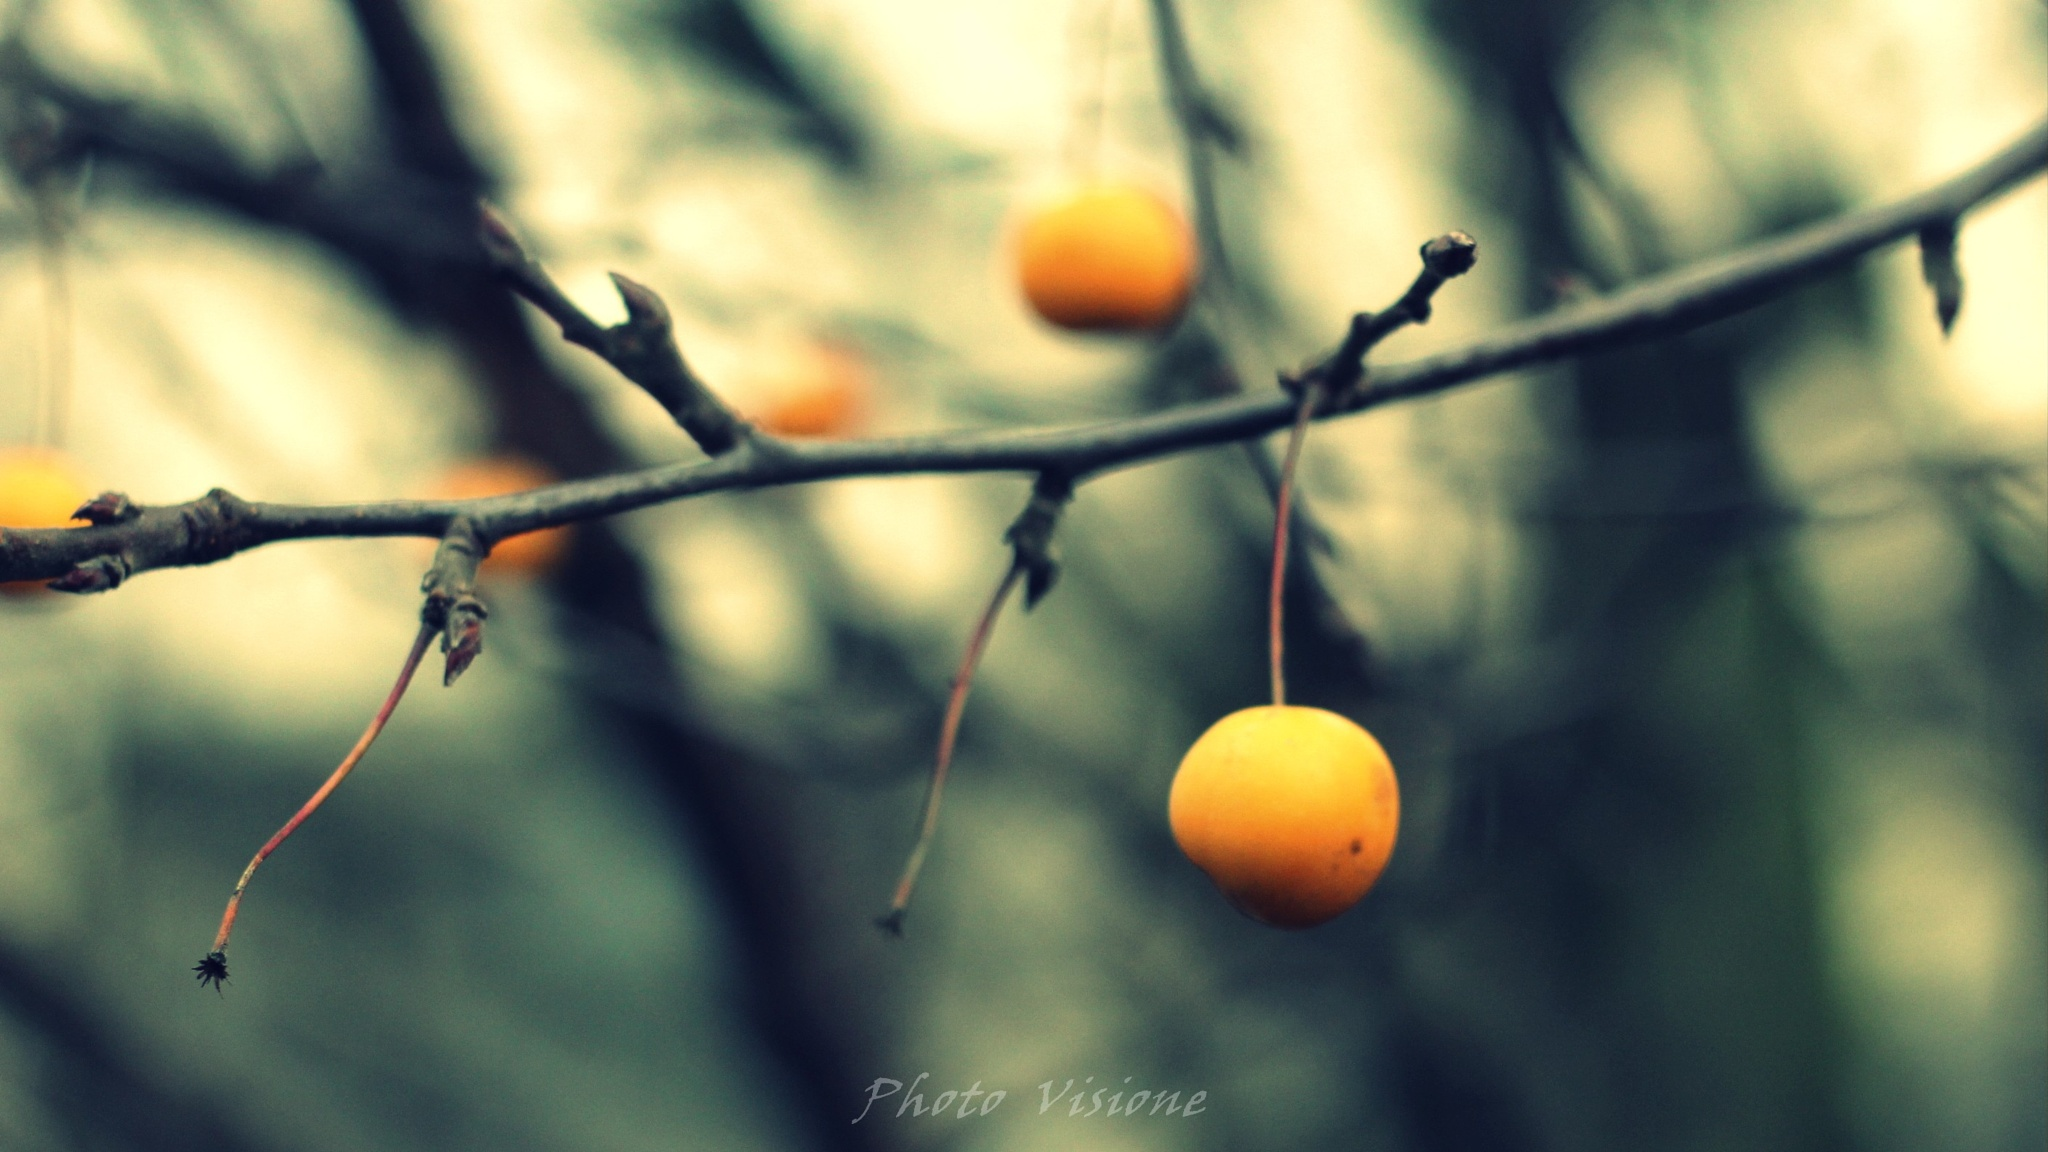 Untitled by Photo Visione